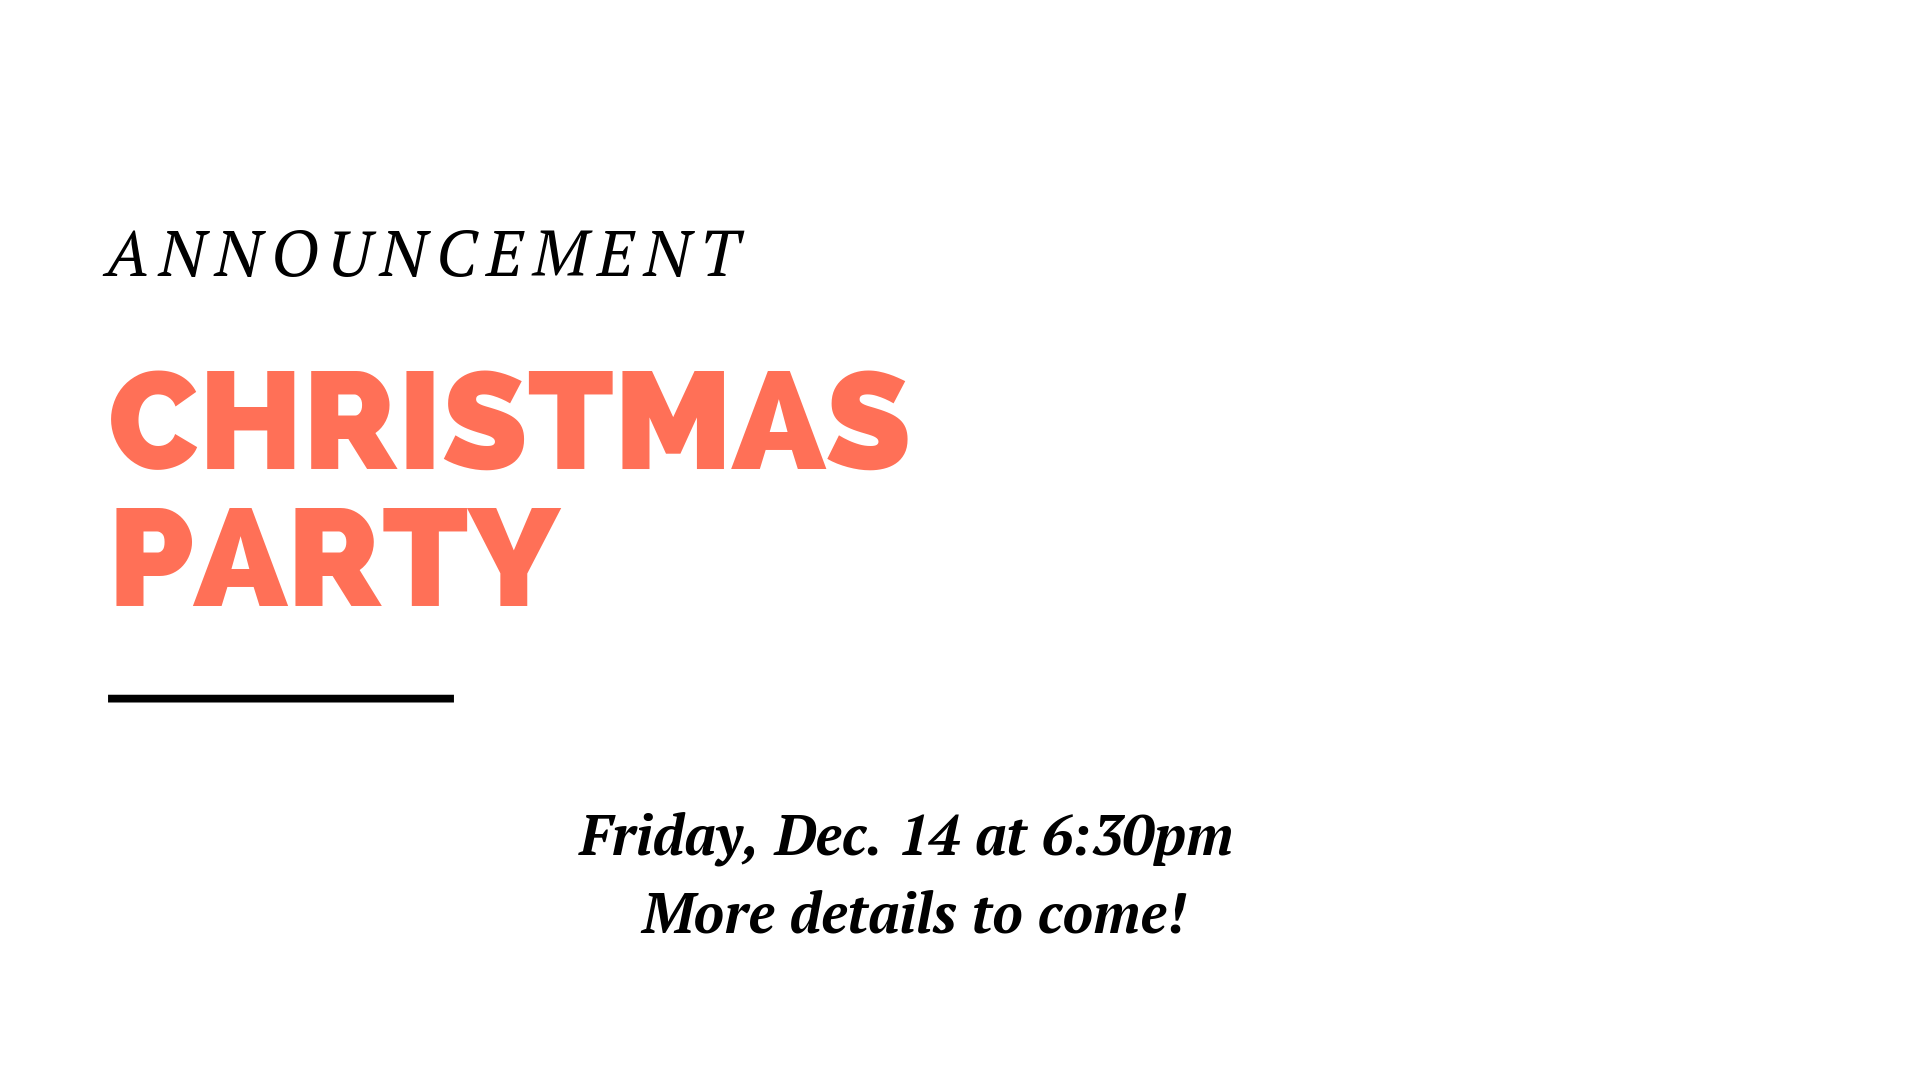 Mark your calendars for Friday, Dec. 14 at 6:30pm because our Youth Cohort will be putting on a Christmas Party that night for the whole church. More details to come.